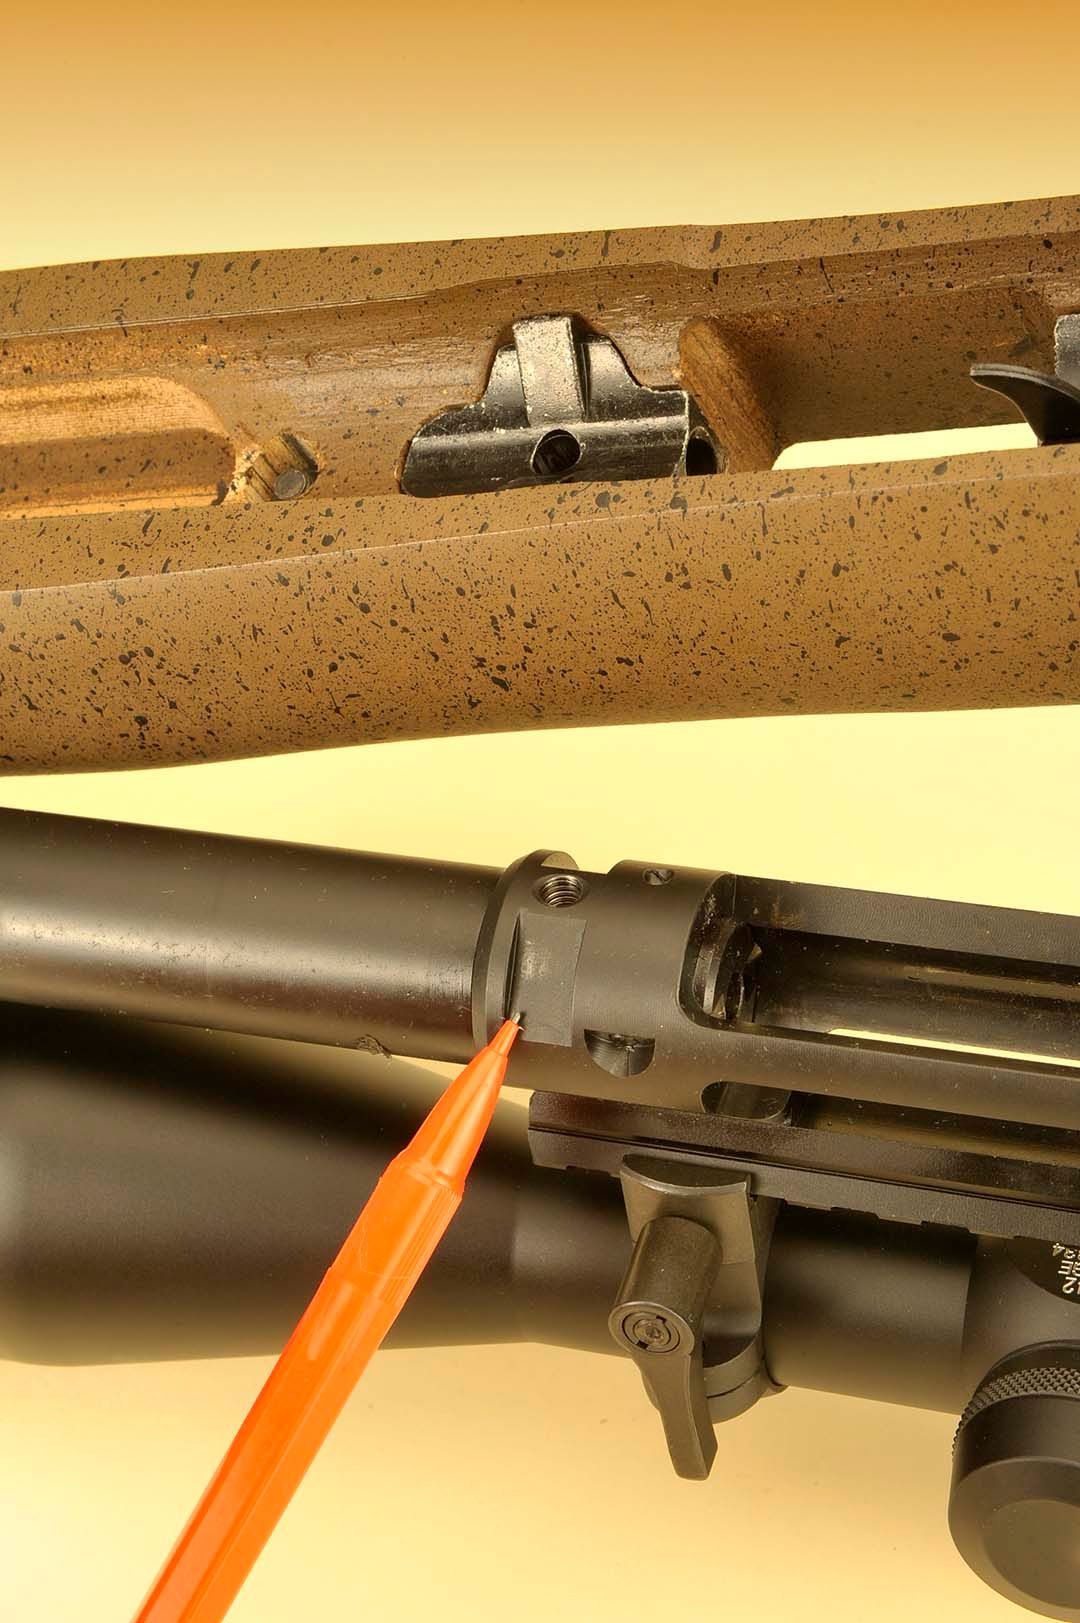 Here, you can see how Ruger's Power Bedding integral bedding block is set up within the rifle. On top is the block with light-colored notches, while the bottom shows how they fit within the confines of like notches on the receiver. Everything fits without any fuss when taking the rifle apart for maintenance and placing it back again.